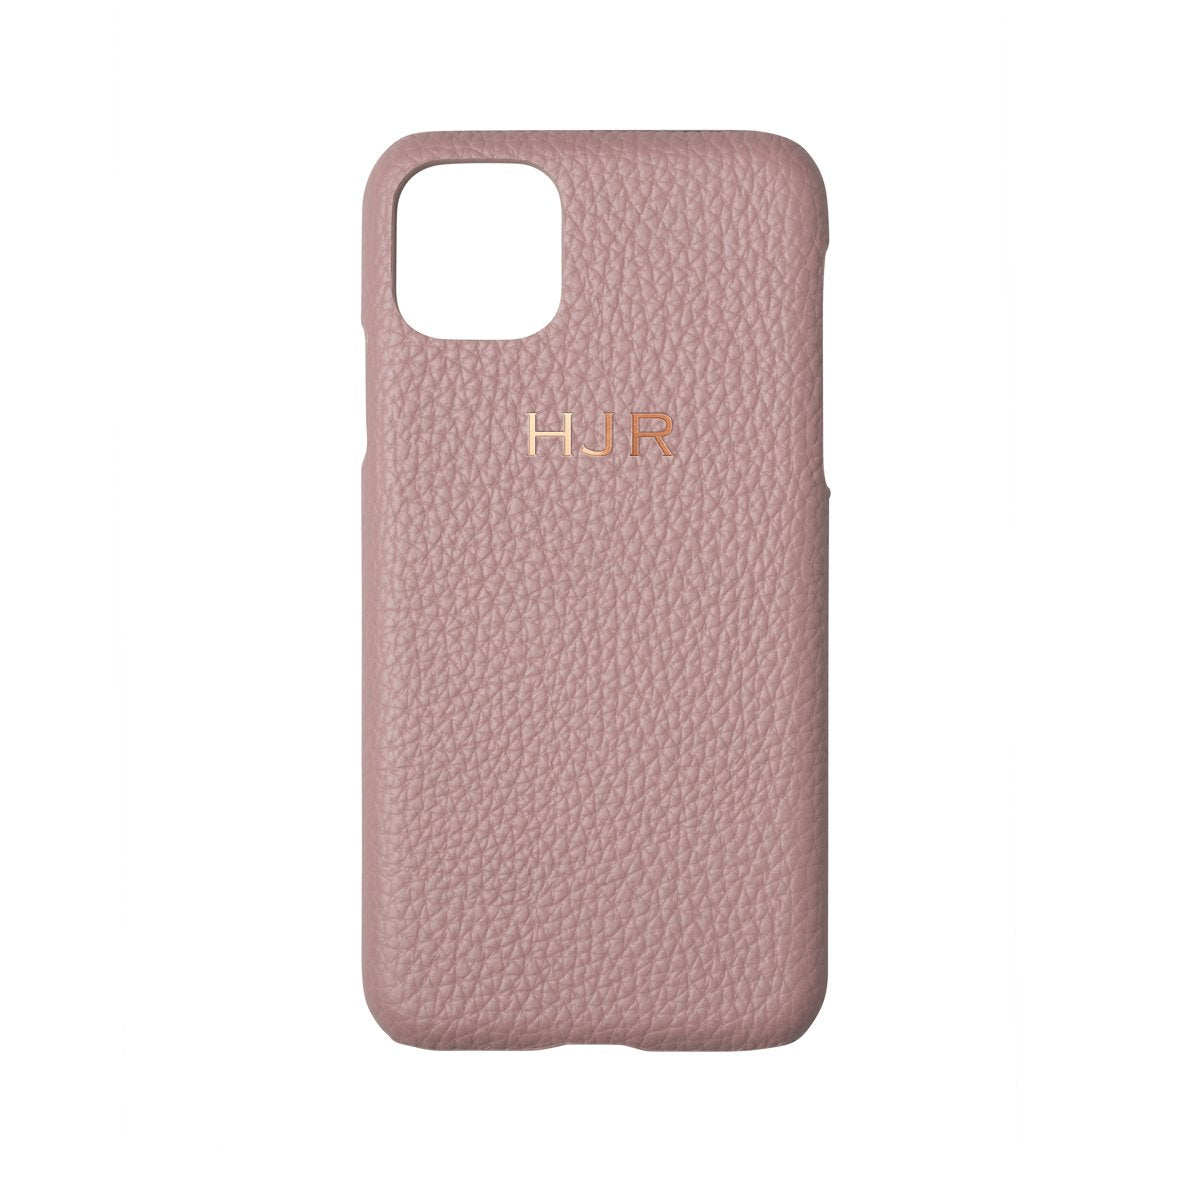 Mauve Pink Phone Case (iPhone 11 Pro)